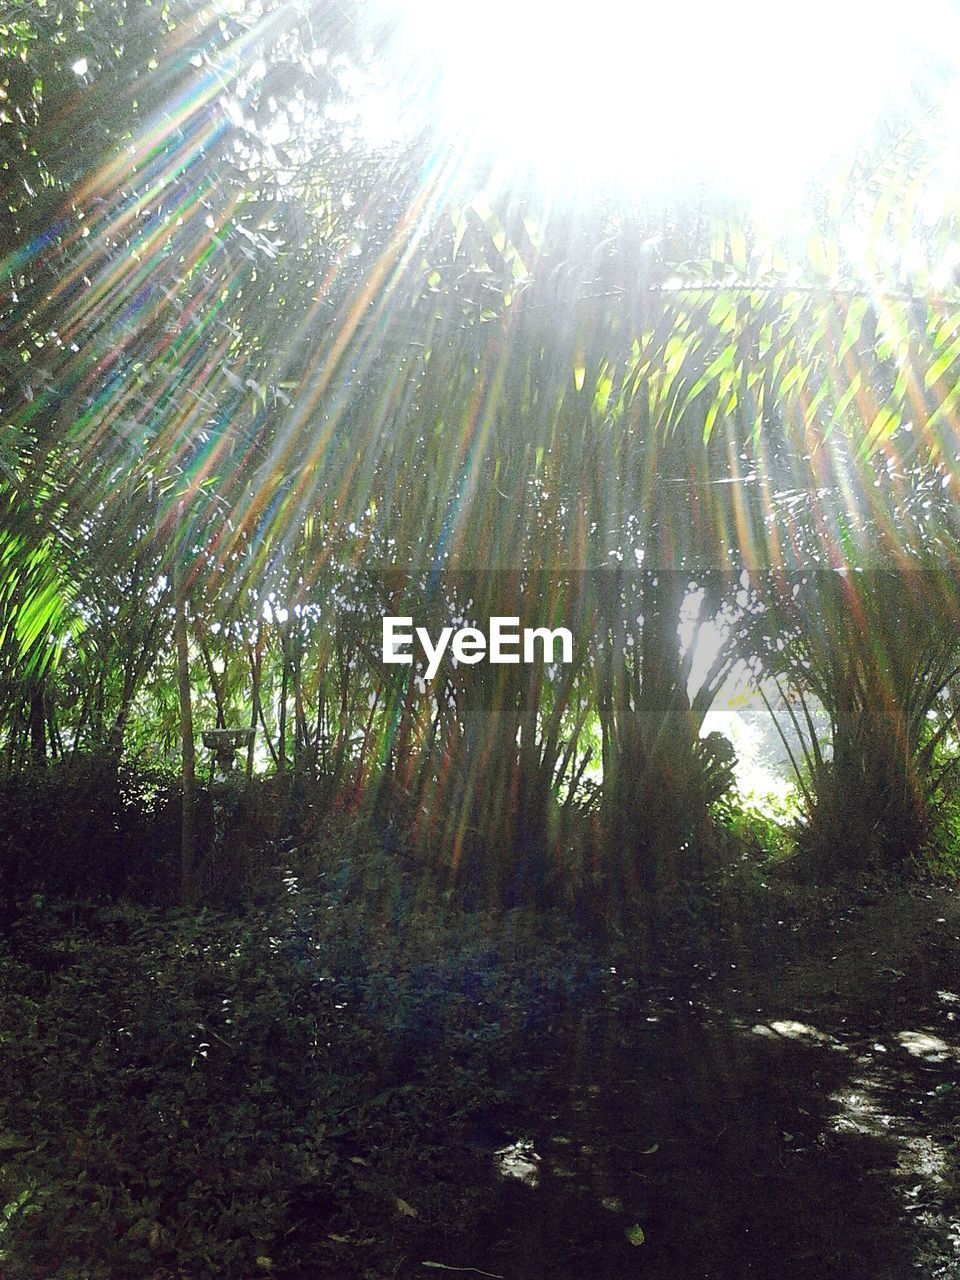 nature, tranquility, growth, beauty in nature, tranquil scene, lens flare, sunlight, sunbeam, outdoors, no people, day, forest, tree, scenics, bamboo - plant, bamboo grove, low angle view, sky